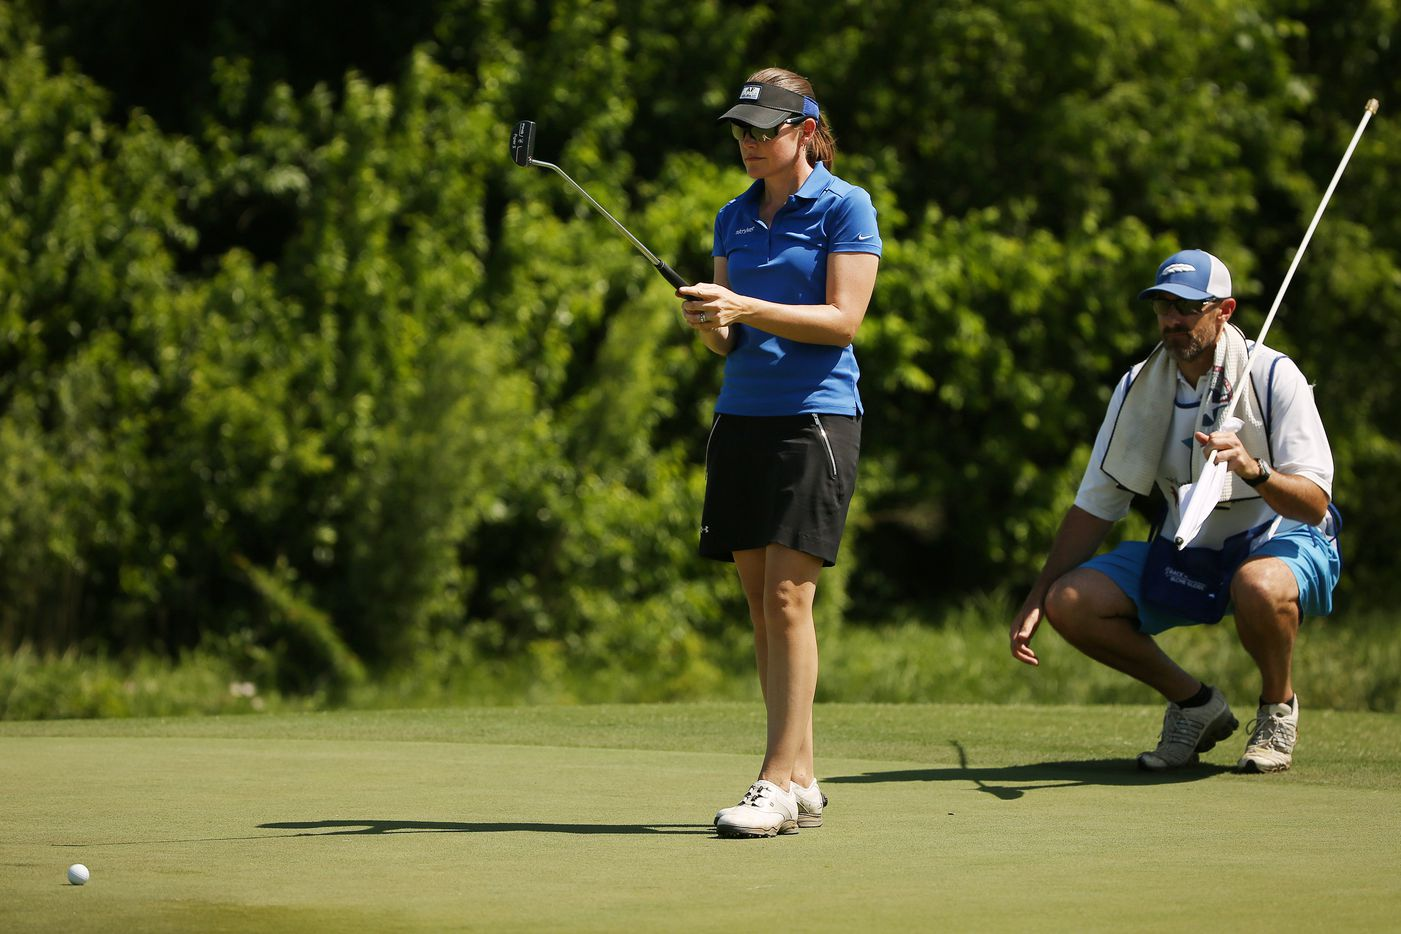 Stephanie Louden, of Frisco, Texas, prepares to putt on the 17th green as her husband, Mike Louden, who is also her caddy, watches on during round one of the 36-hole revised Volunteers of America LPGA North Dallas Classic at the Old American Golf Club in The Colony, Texas Friday May 5, 2018.